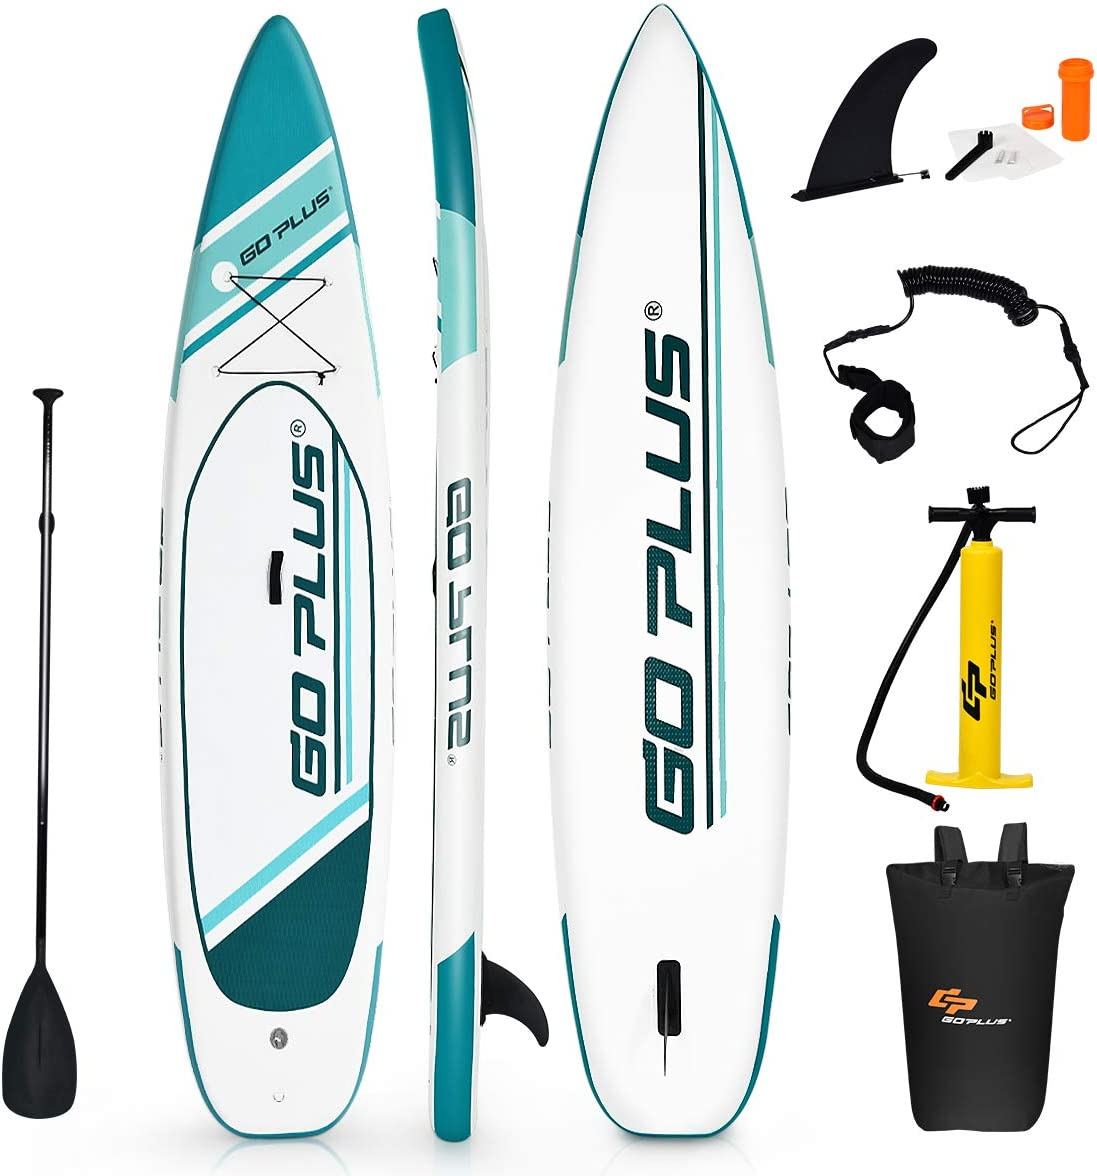 Goplus 11ft Expedition Inflatable Stand Up Paddle Board, 6 Thick SUP with Accessory Pack, Adjustable Paddle, Carry Bag, Bottom Fin, Hand Pump, Non-Slip Deck, Leash and Repair Kit